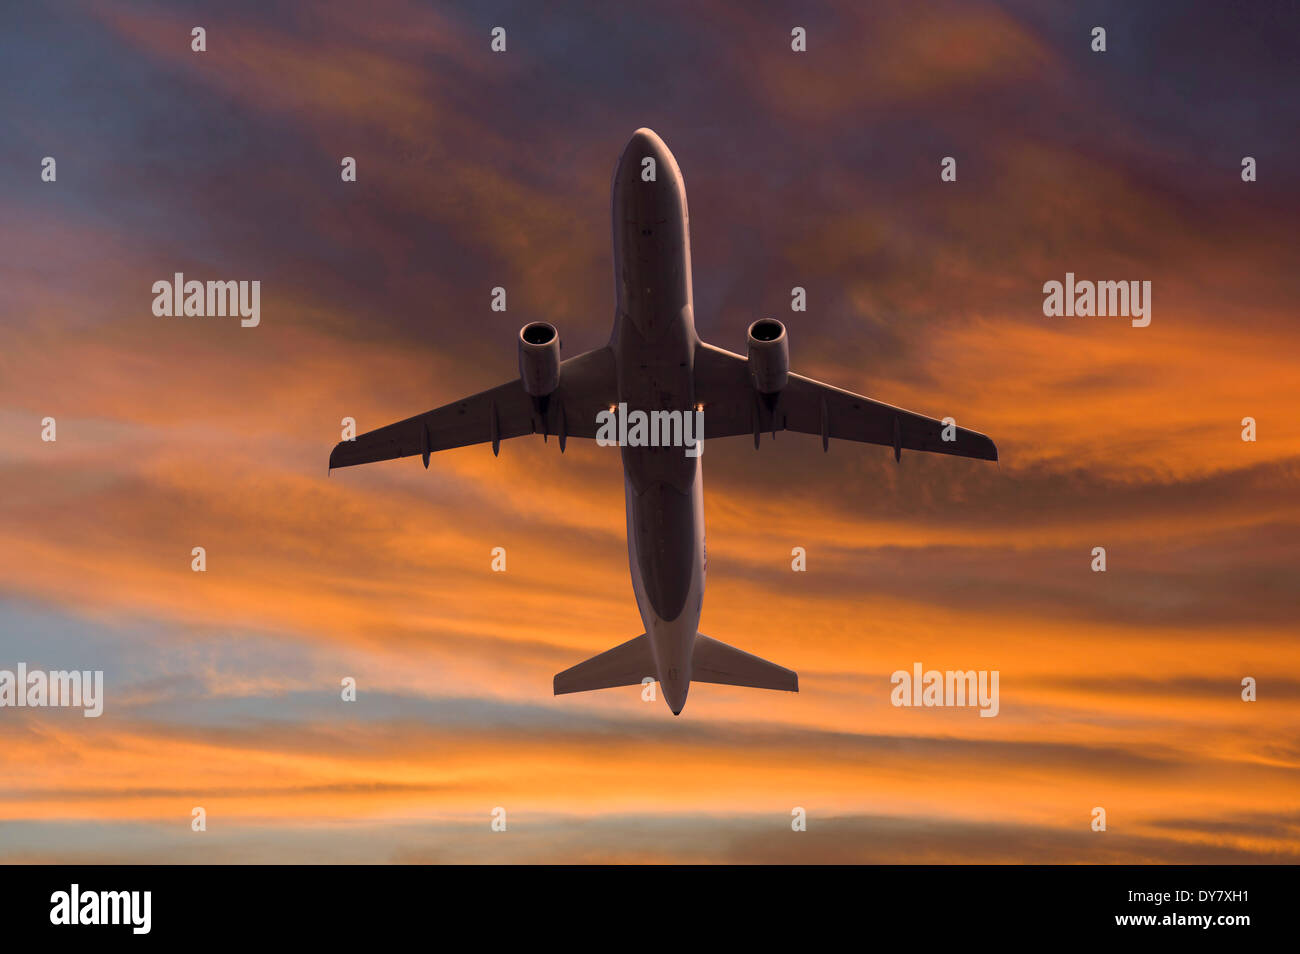 Lufthansa Airbus in flight, from below, in the evening light - Stock Image